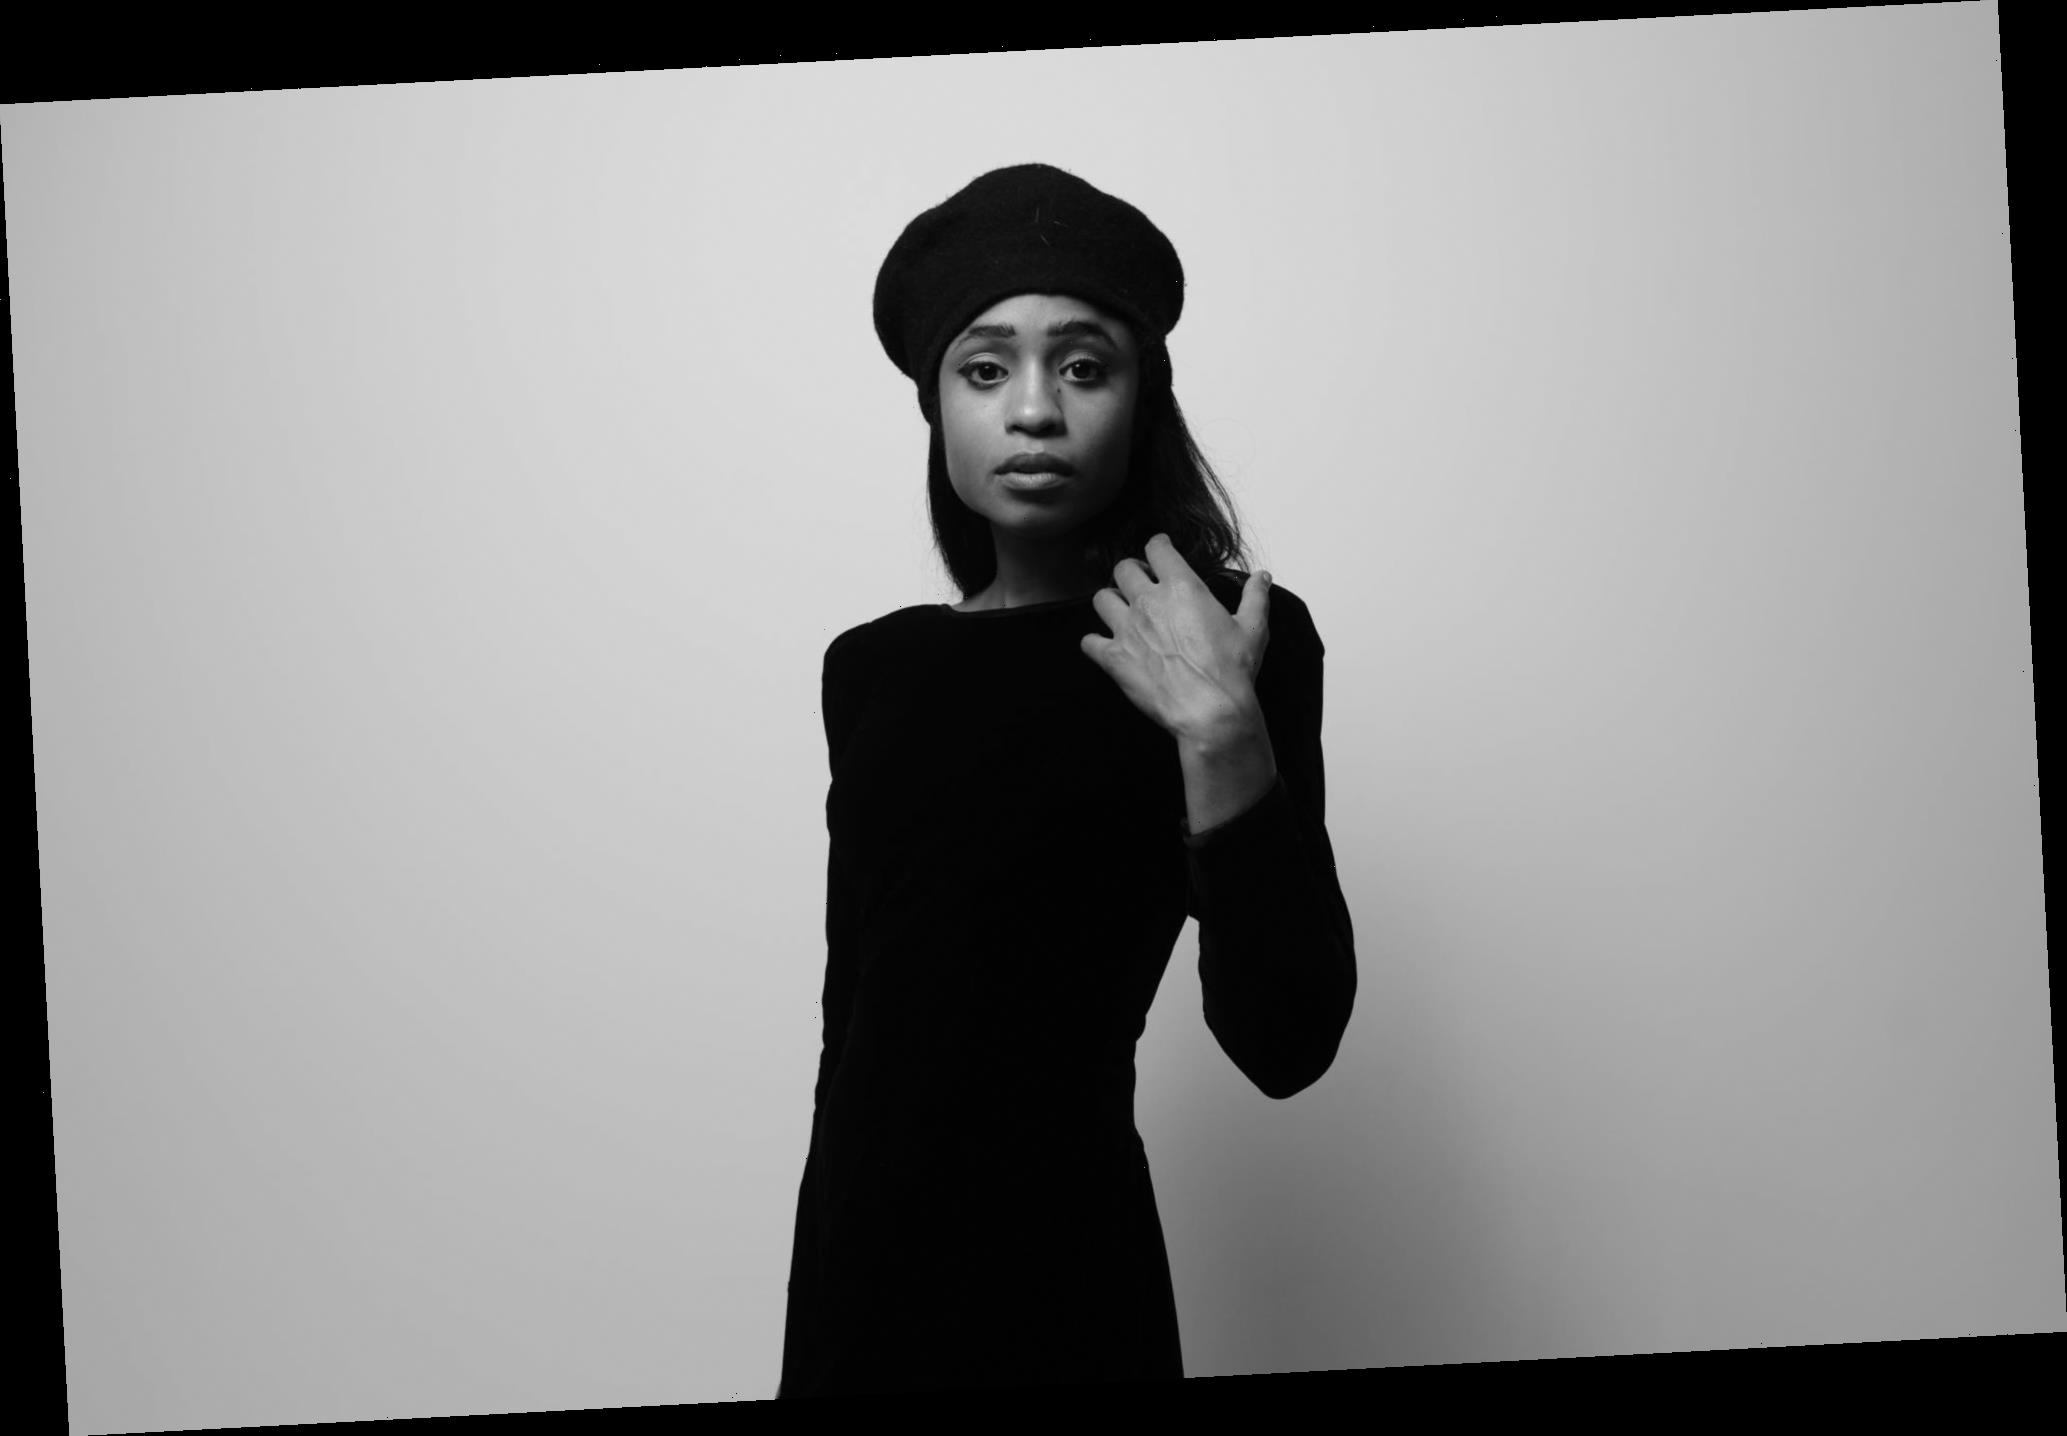 Hear Adia Victoria's Urgent Call to Action in 'South Gotta Change'